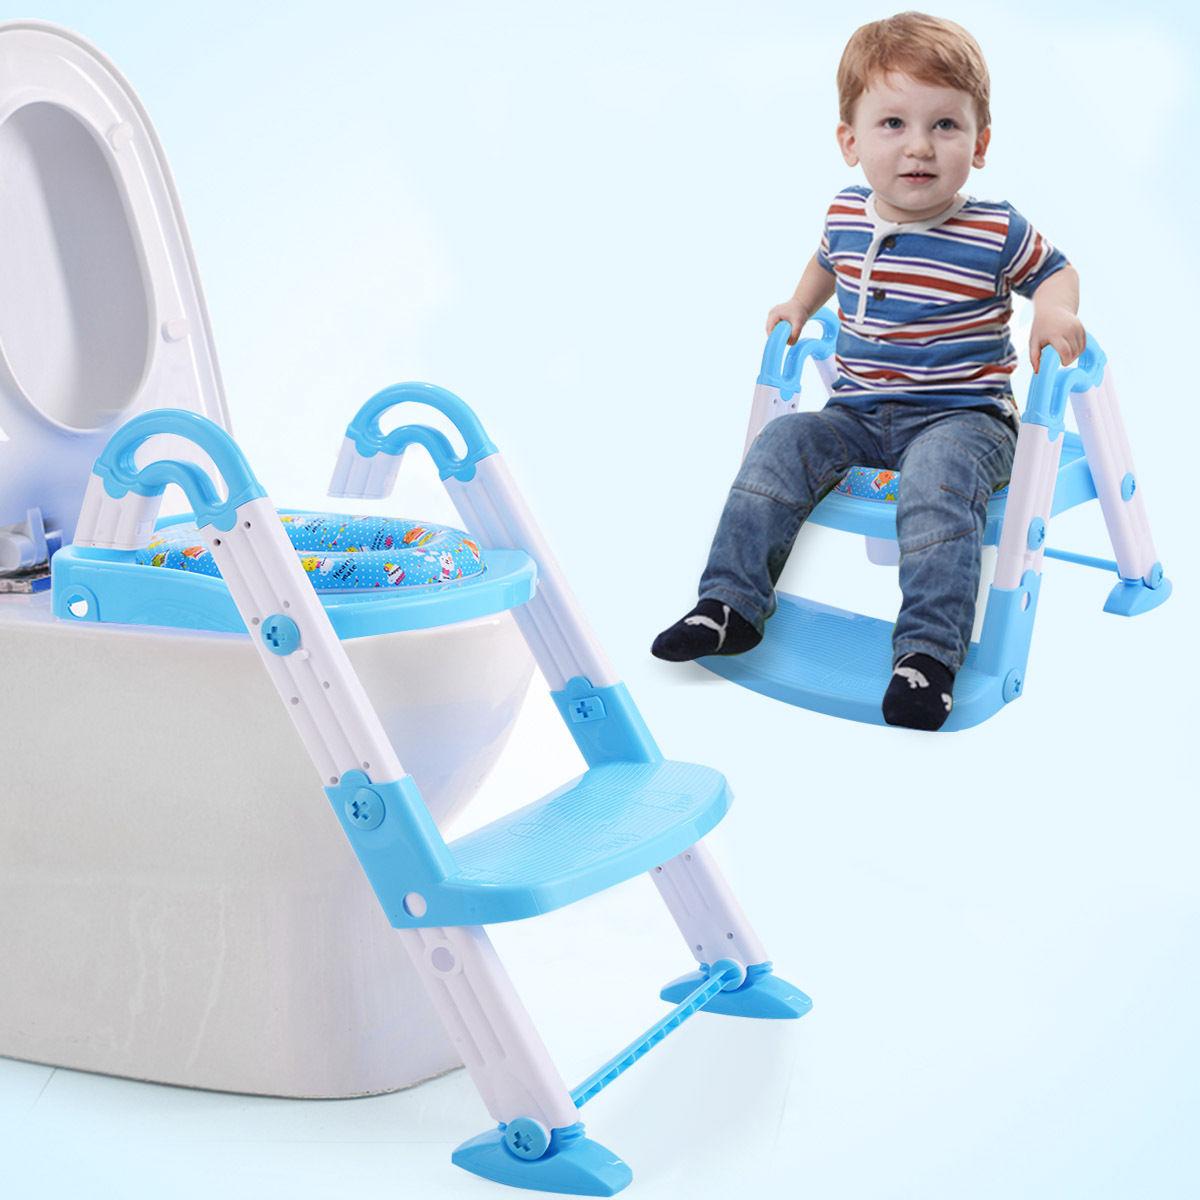 Goplus 3 in 1 Baby Potty Training Toilet Chair Seat Step Ladder Trainer Toddler Blue